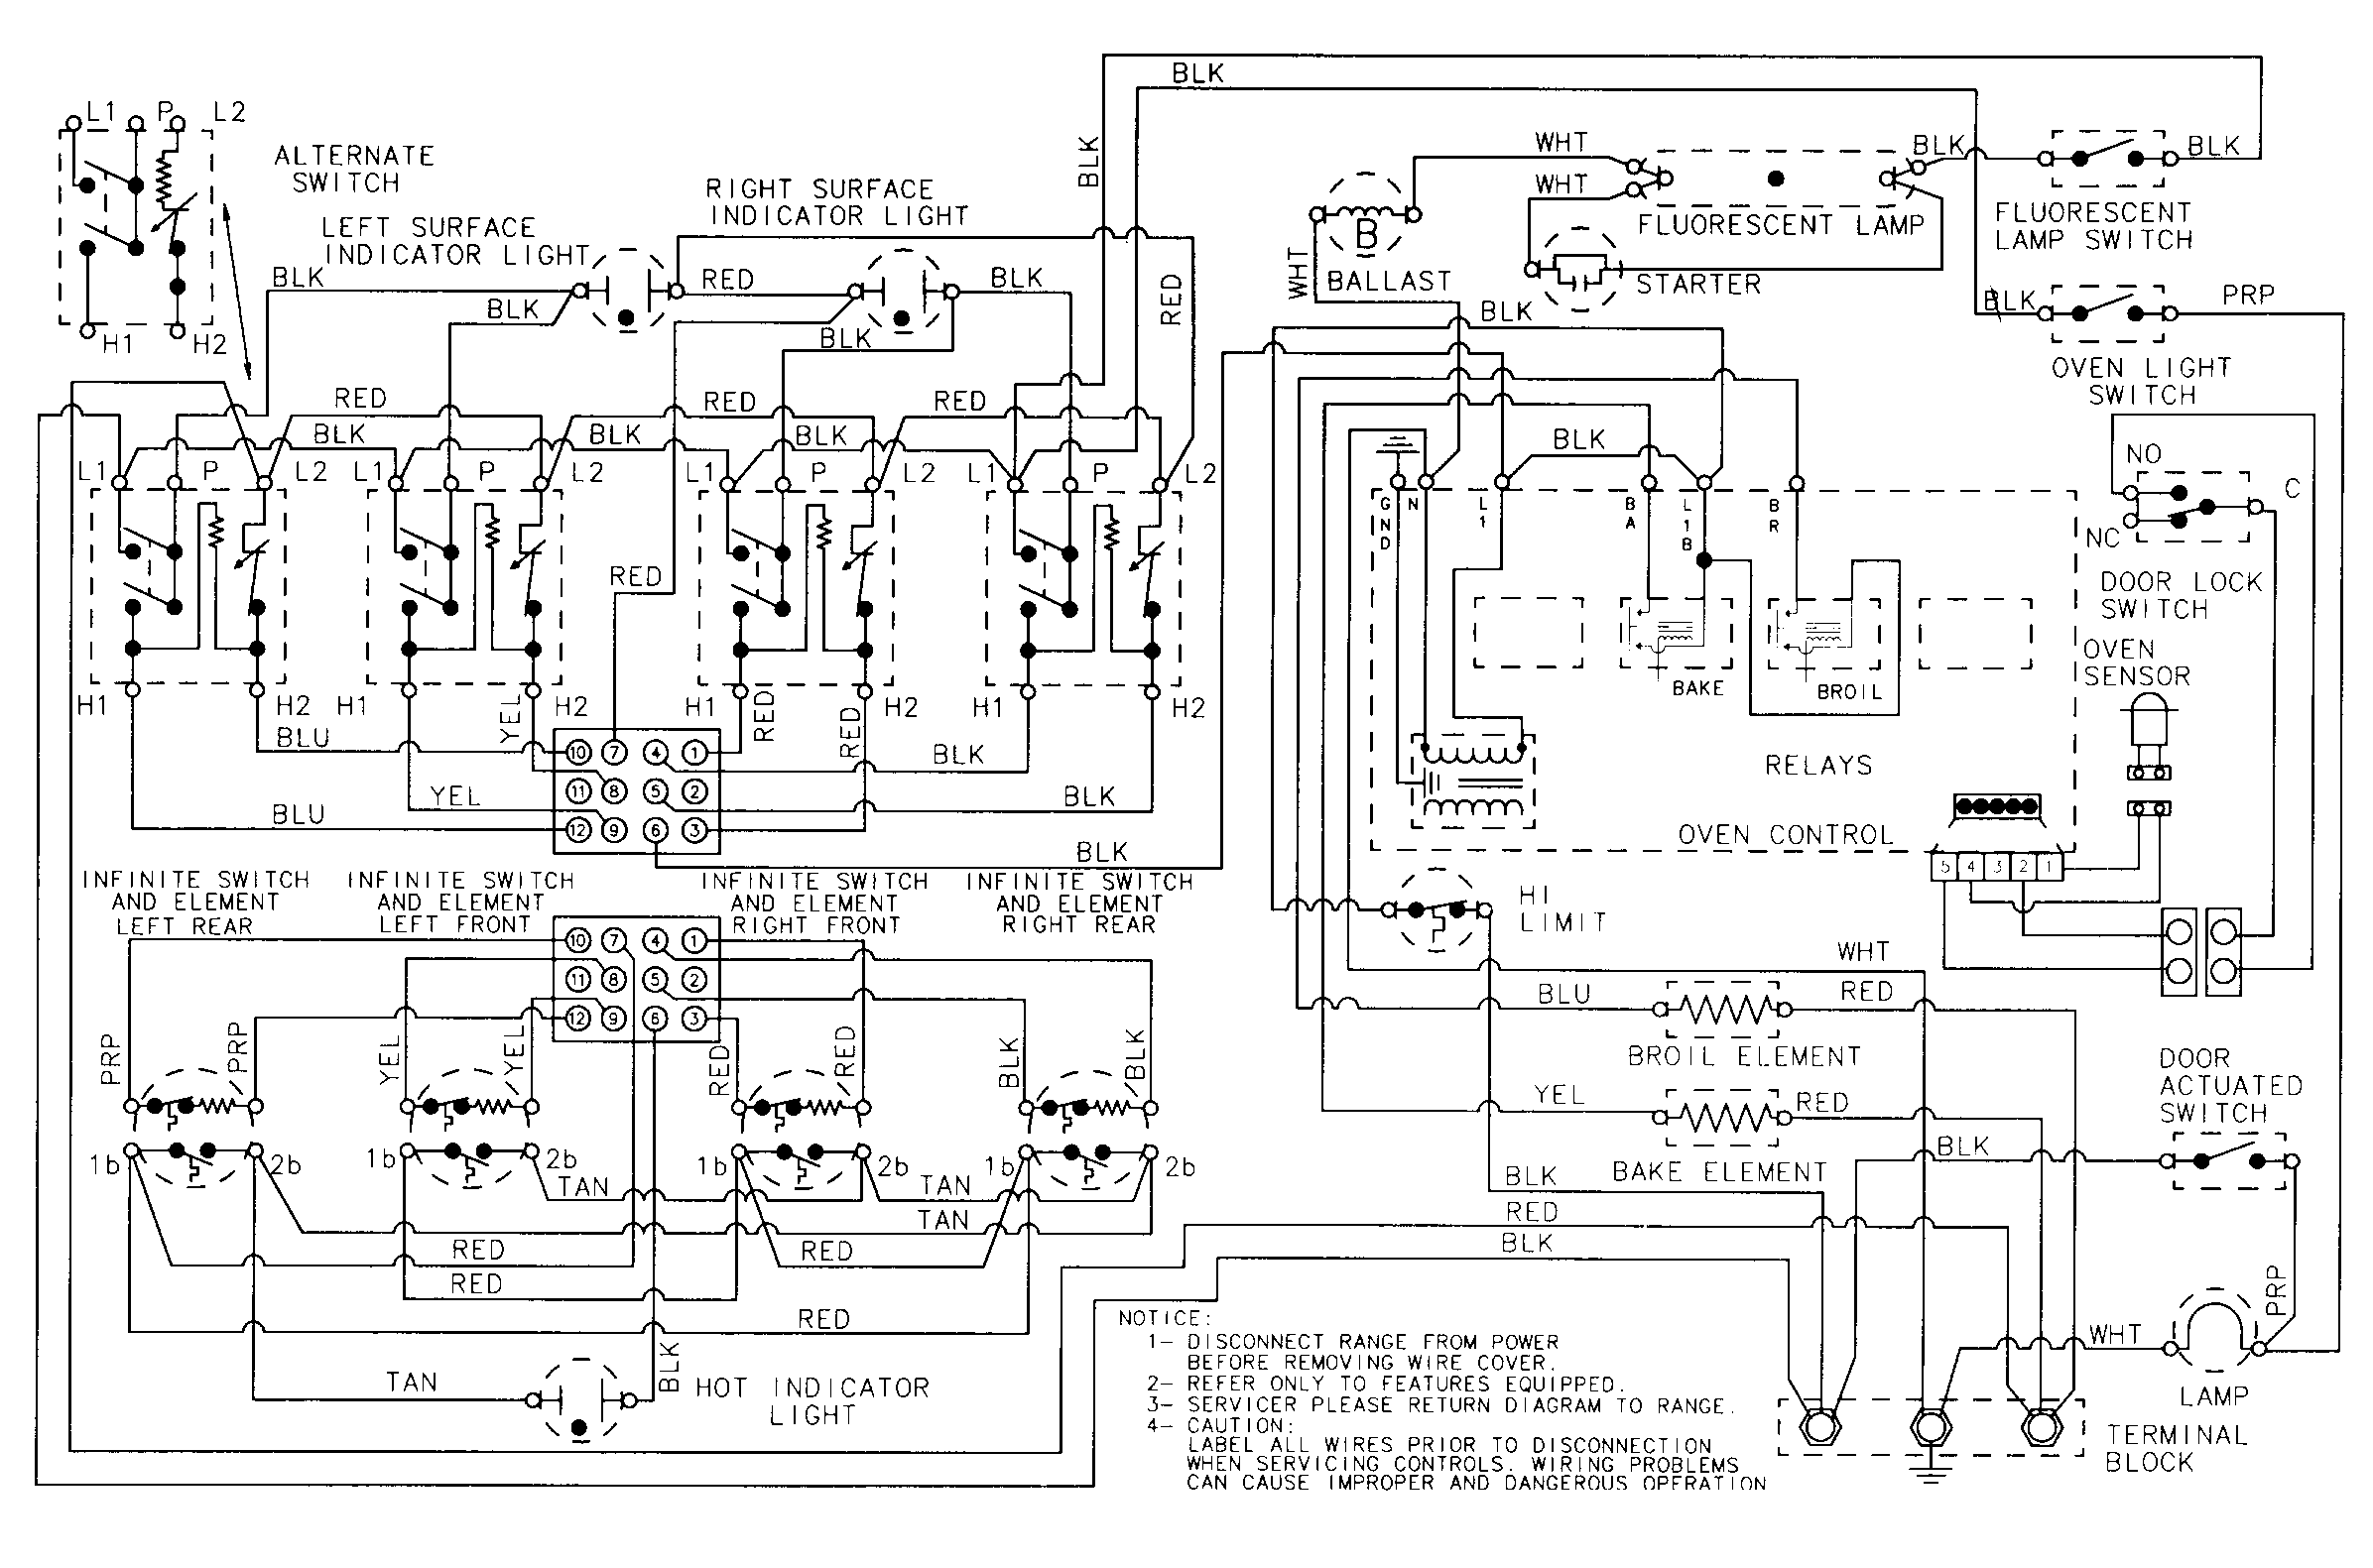 9854d8 ge compressor motor wiring diagram | wiring resources  wiring resources